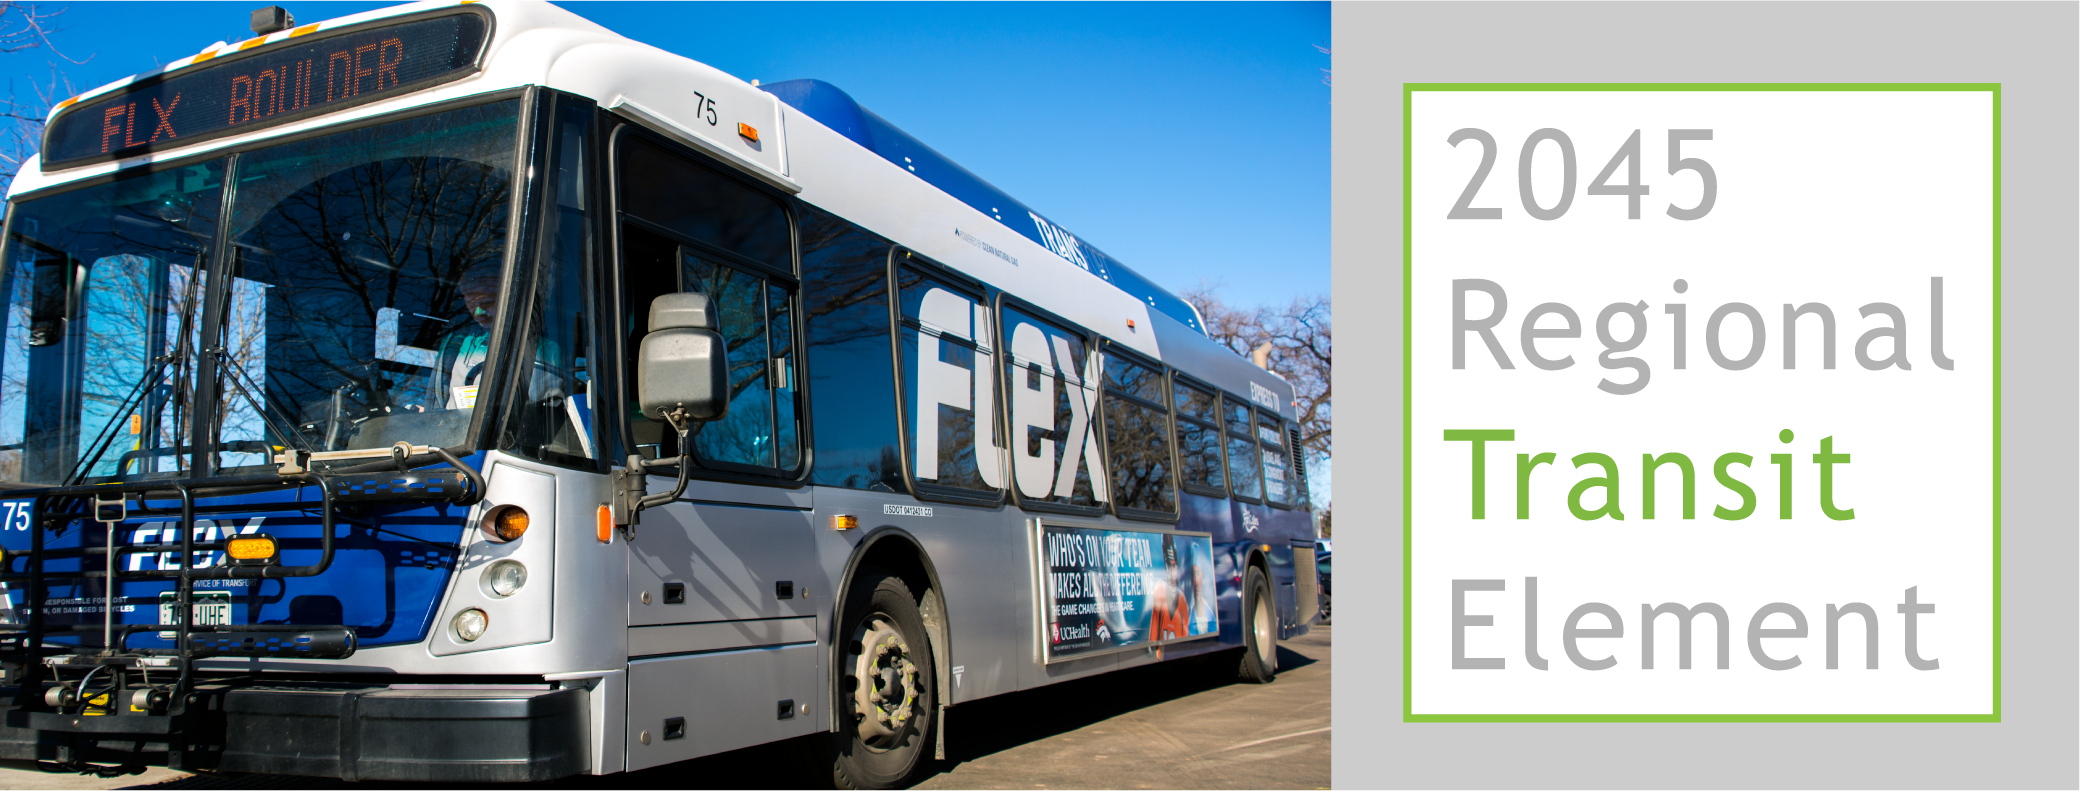 NFRMPO 2045 Regional Transit Element Header Image with FLEX bus